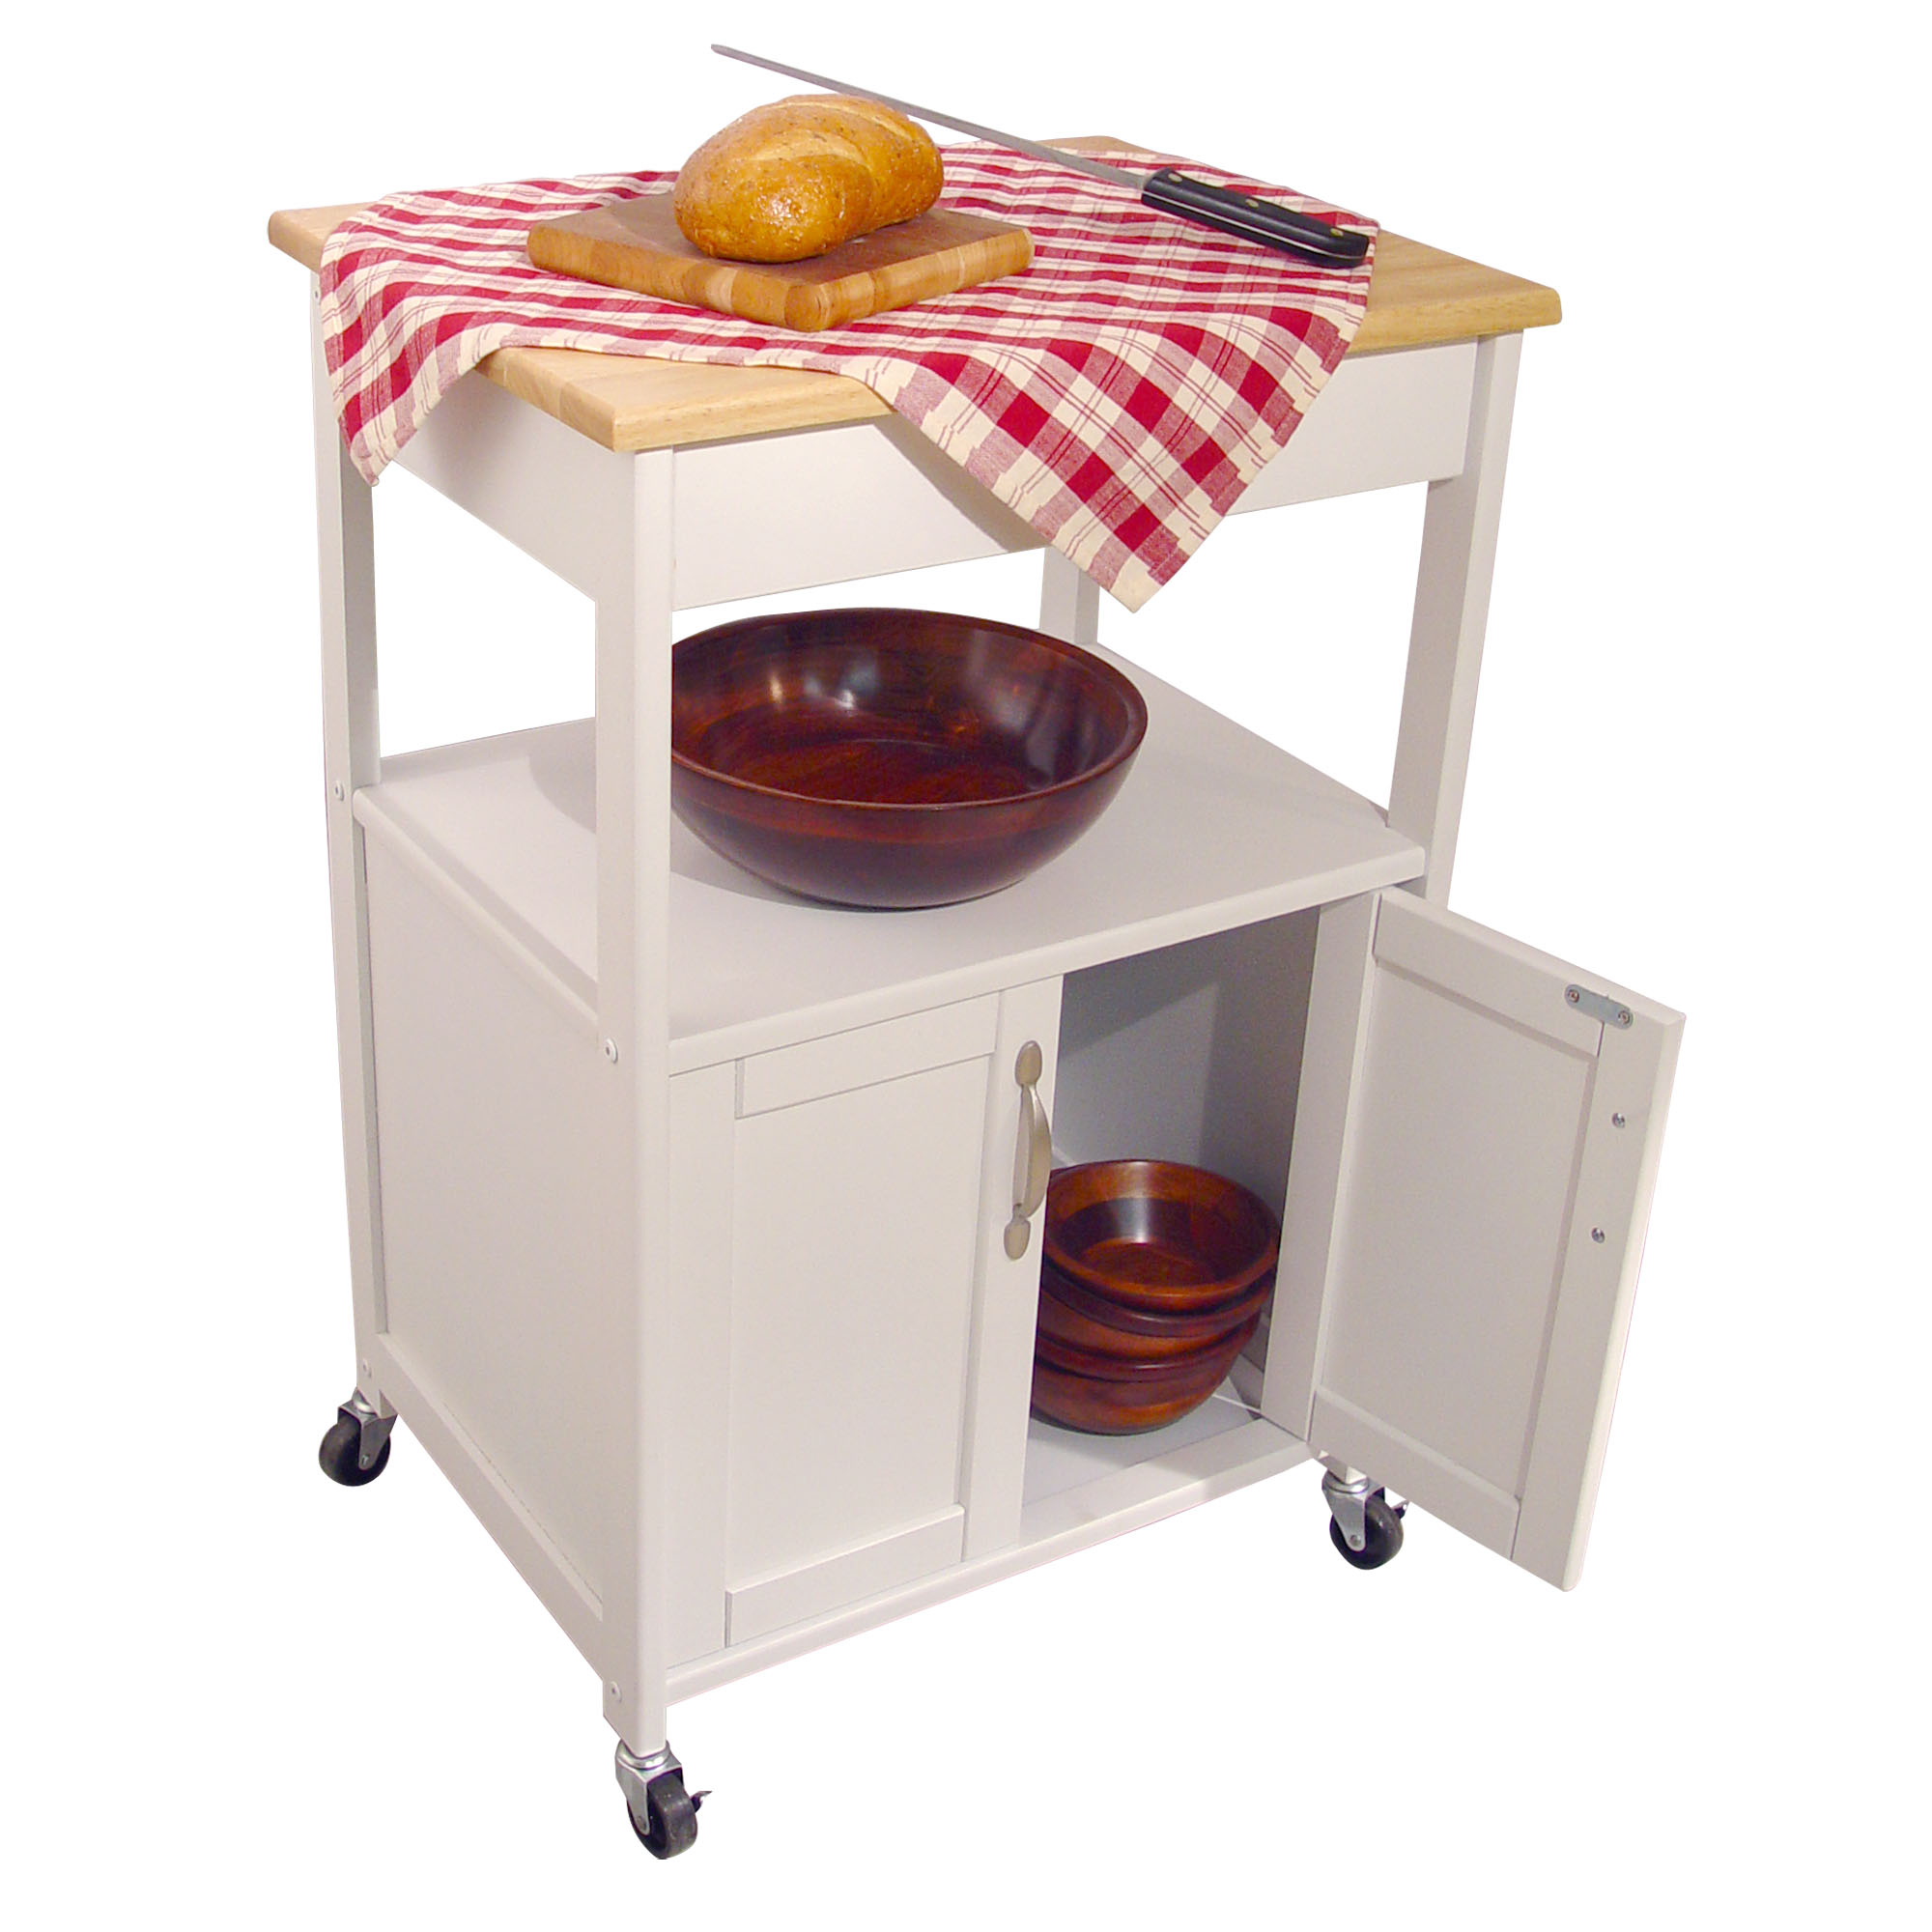 Catskill Open-Shelf White Kitchen Trolley - 23